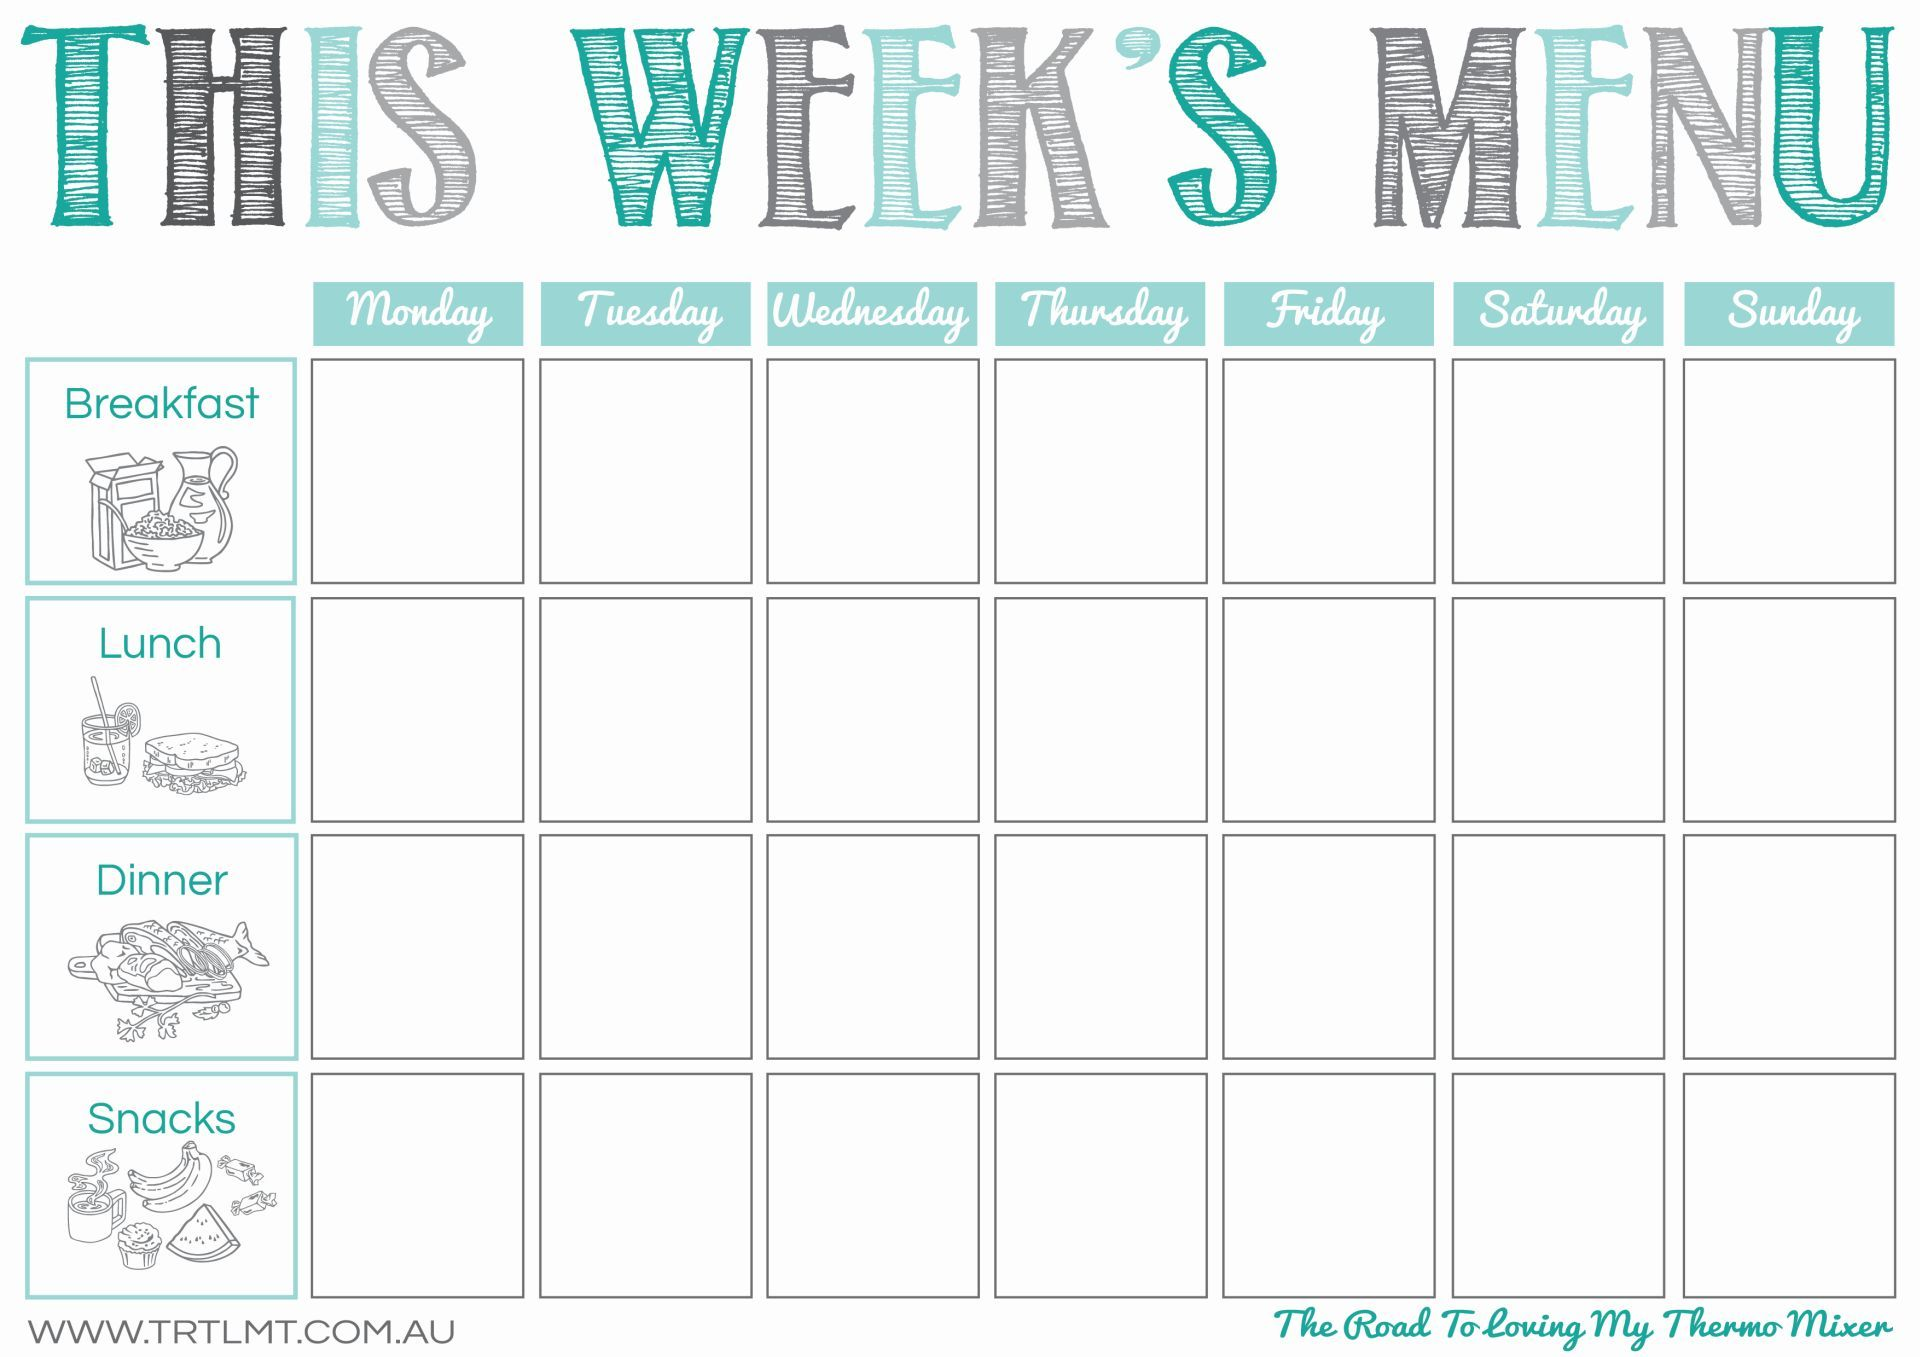 Printables Weekly meal planner template, Meal planning